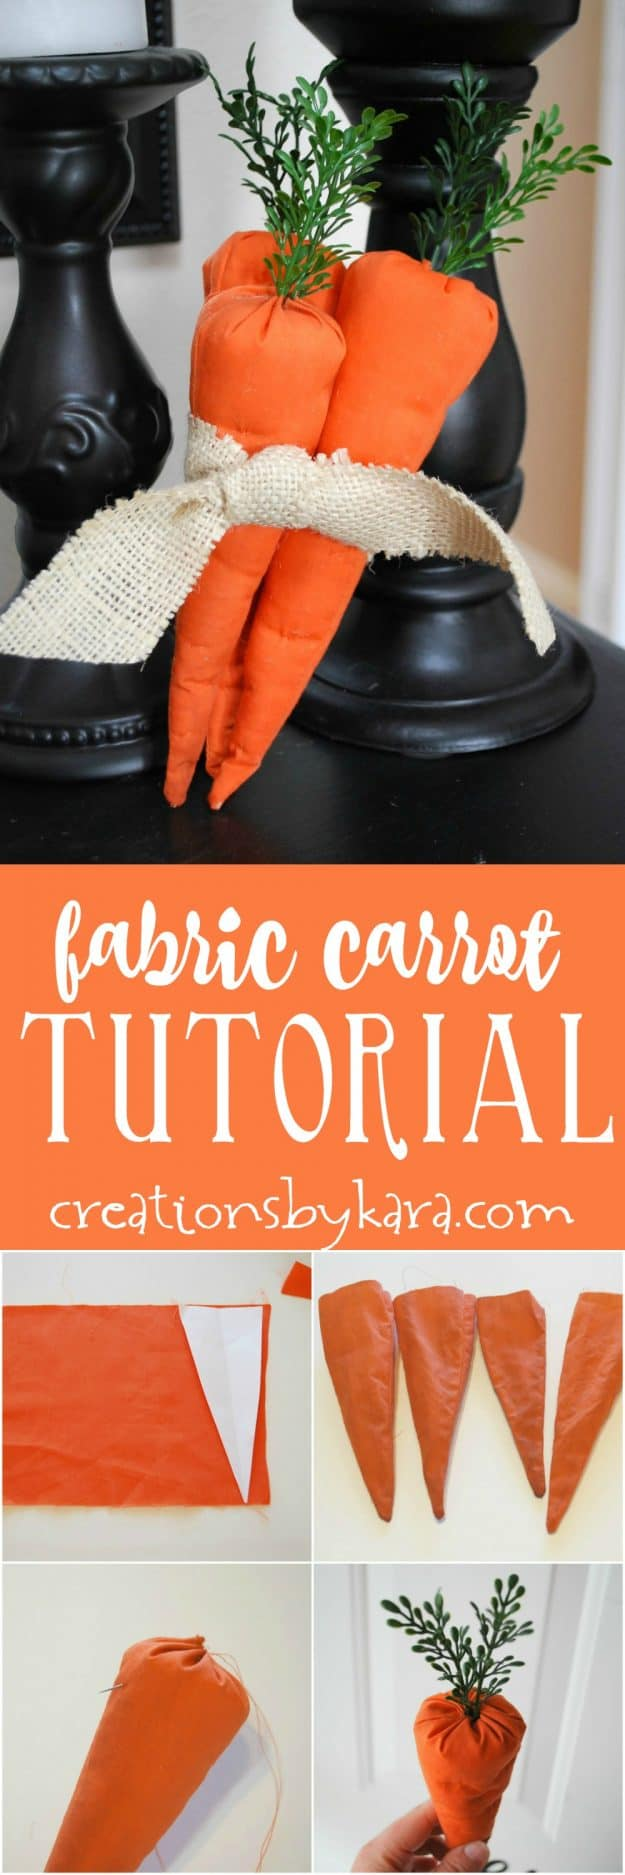 Fabric Carrot Tutorial - step by step instructions for sewing cute fabric carrots. Perfect Easter or spring decor!